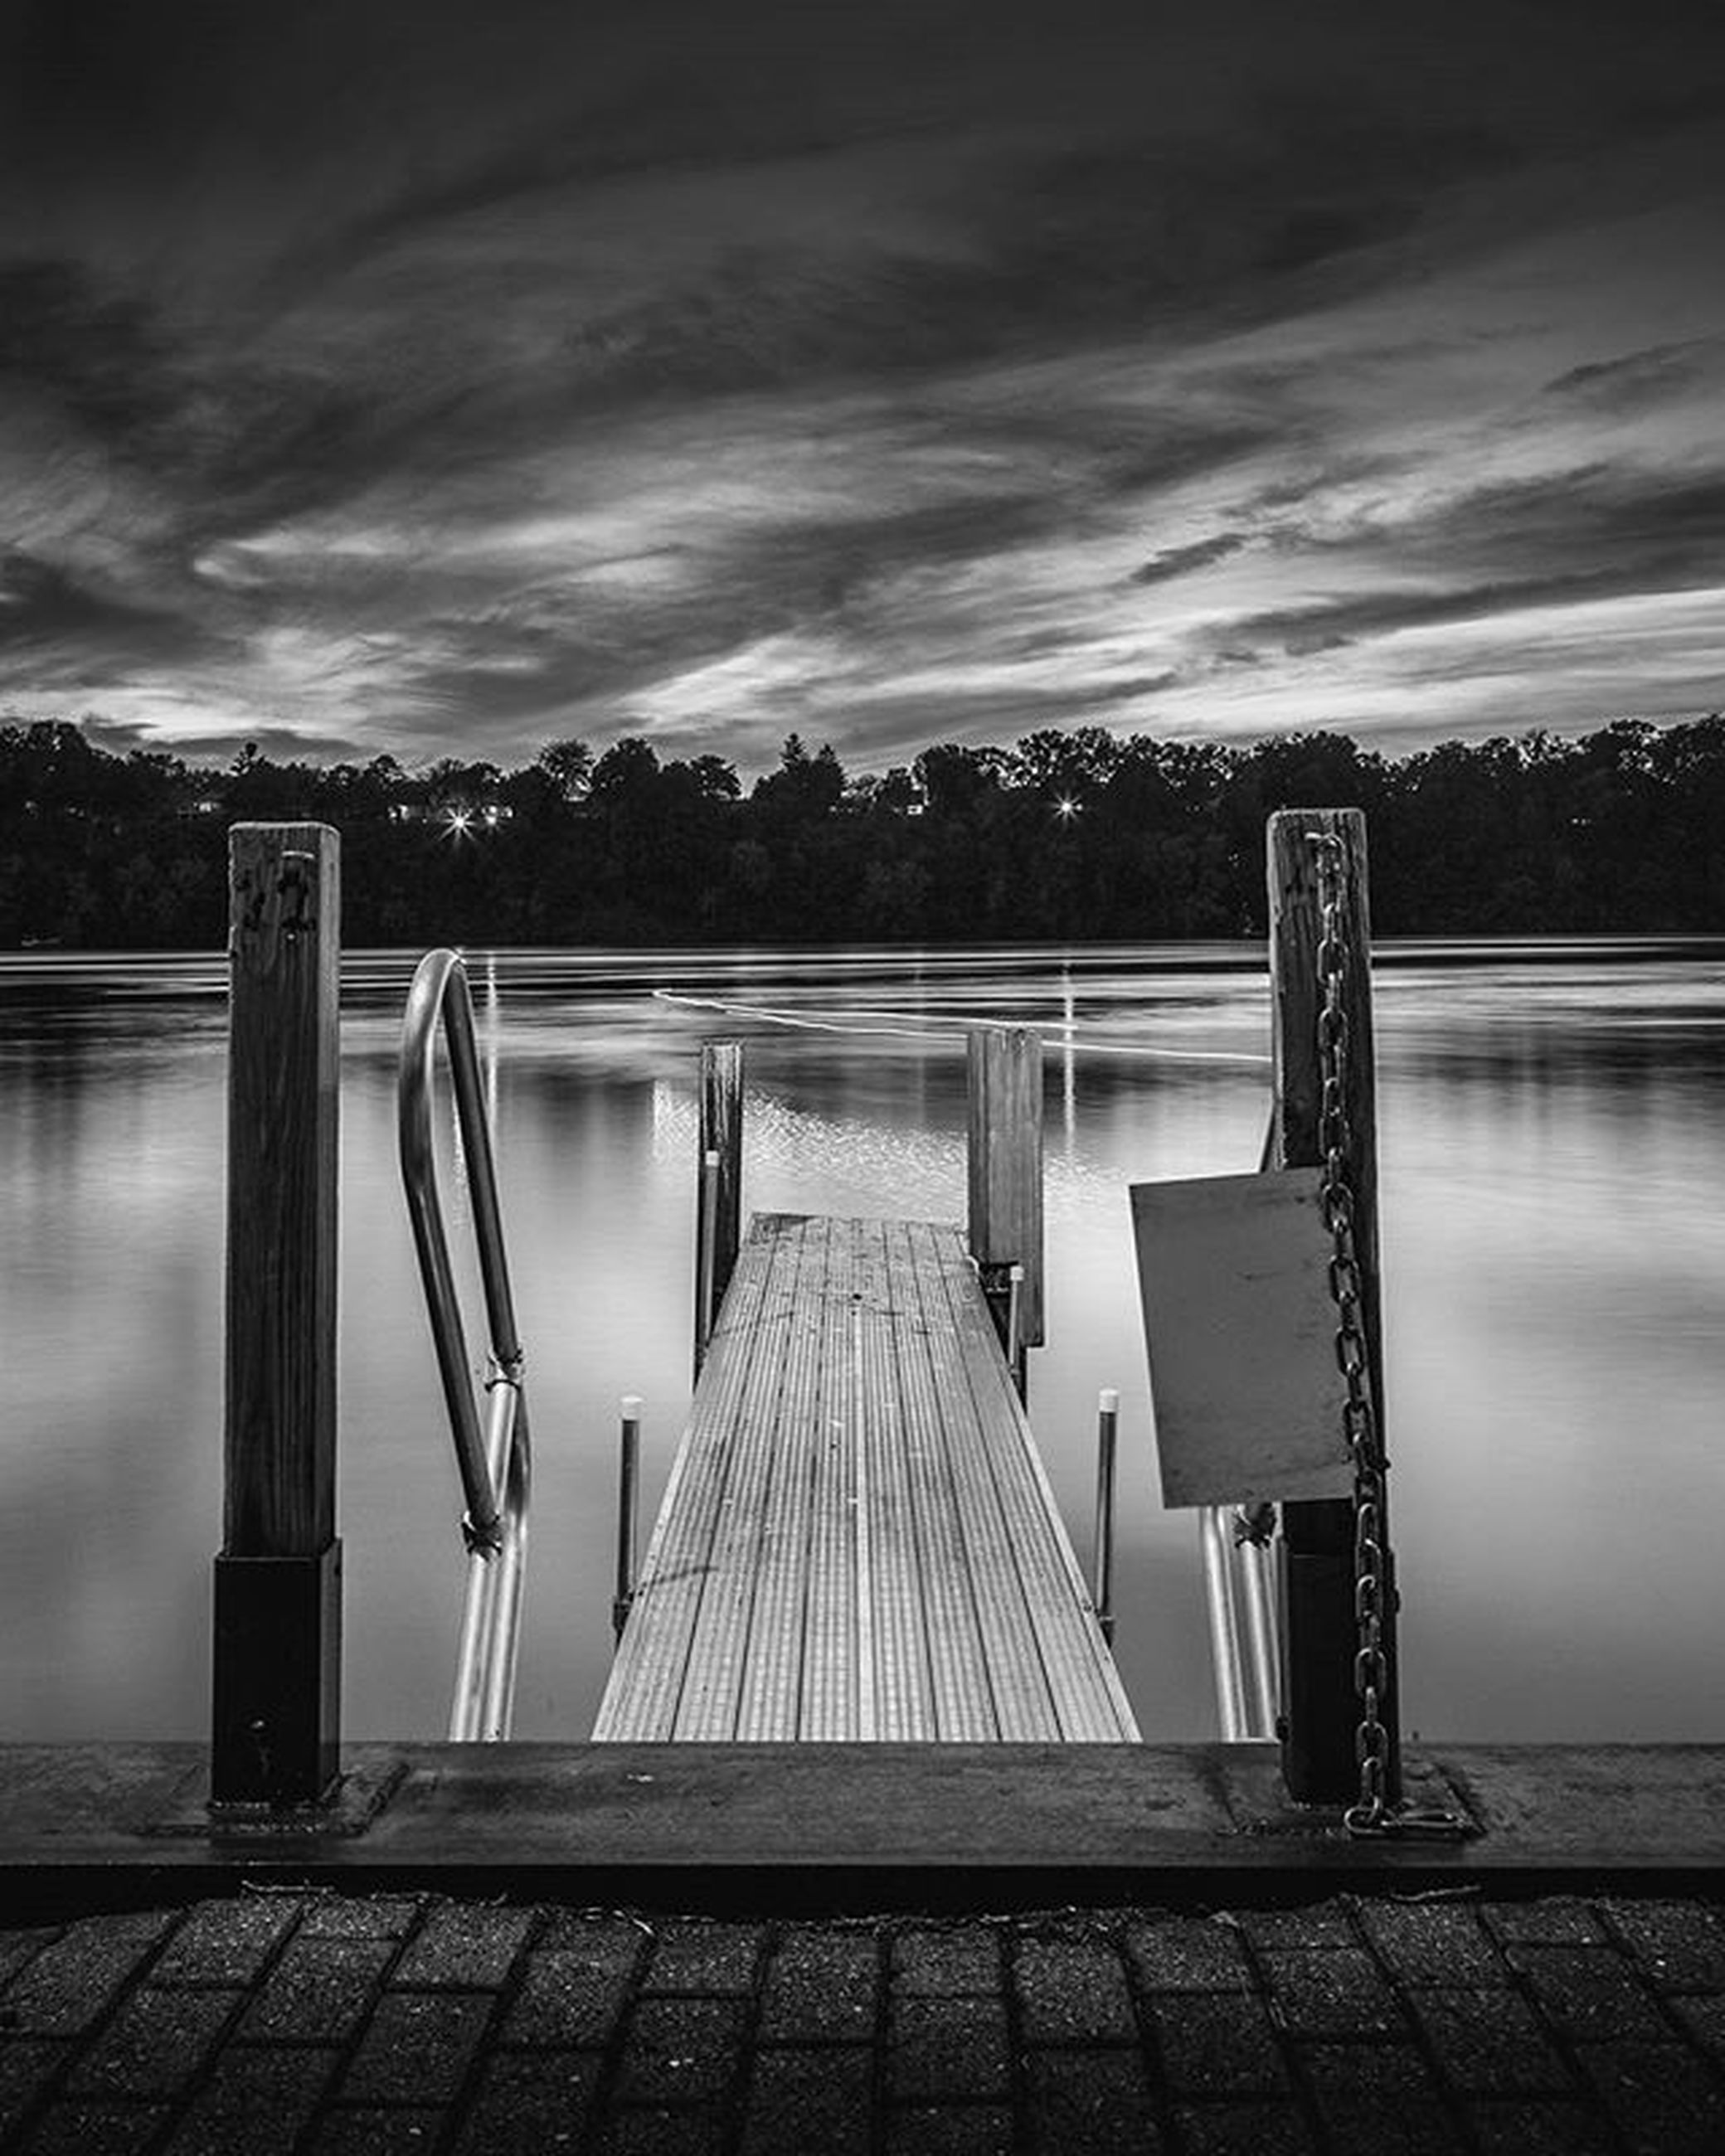 sky, cloud - sky, water, cloudy, empty, pier, tranquility, railing, lake, the way forward, cloud, absence, tranquil scene, nature, weather, built structure, wood - material, scenics, overcast, outdoors